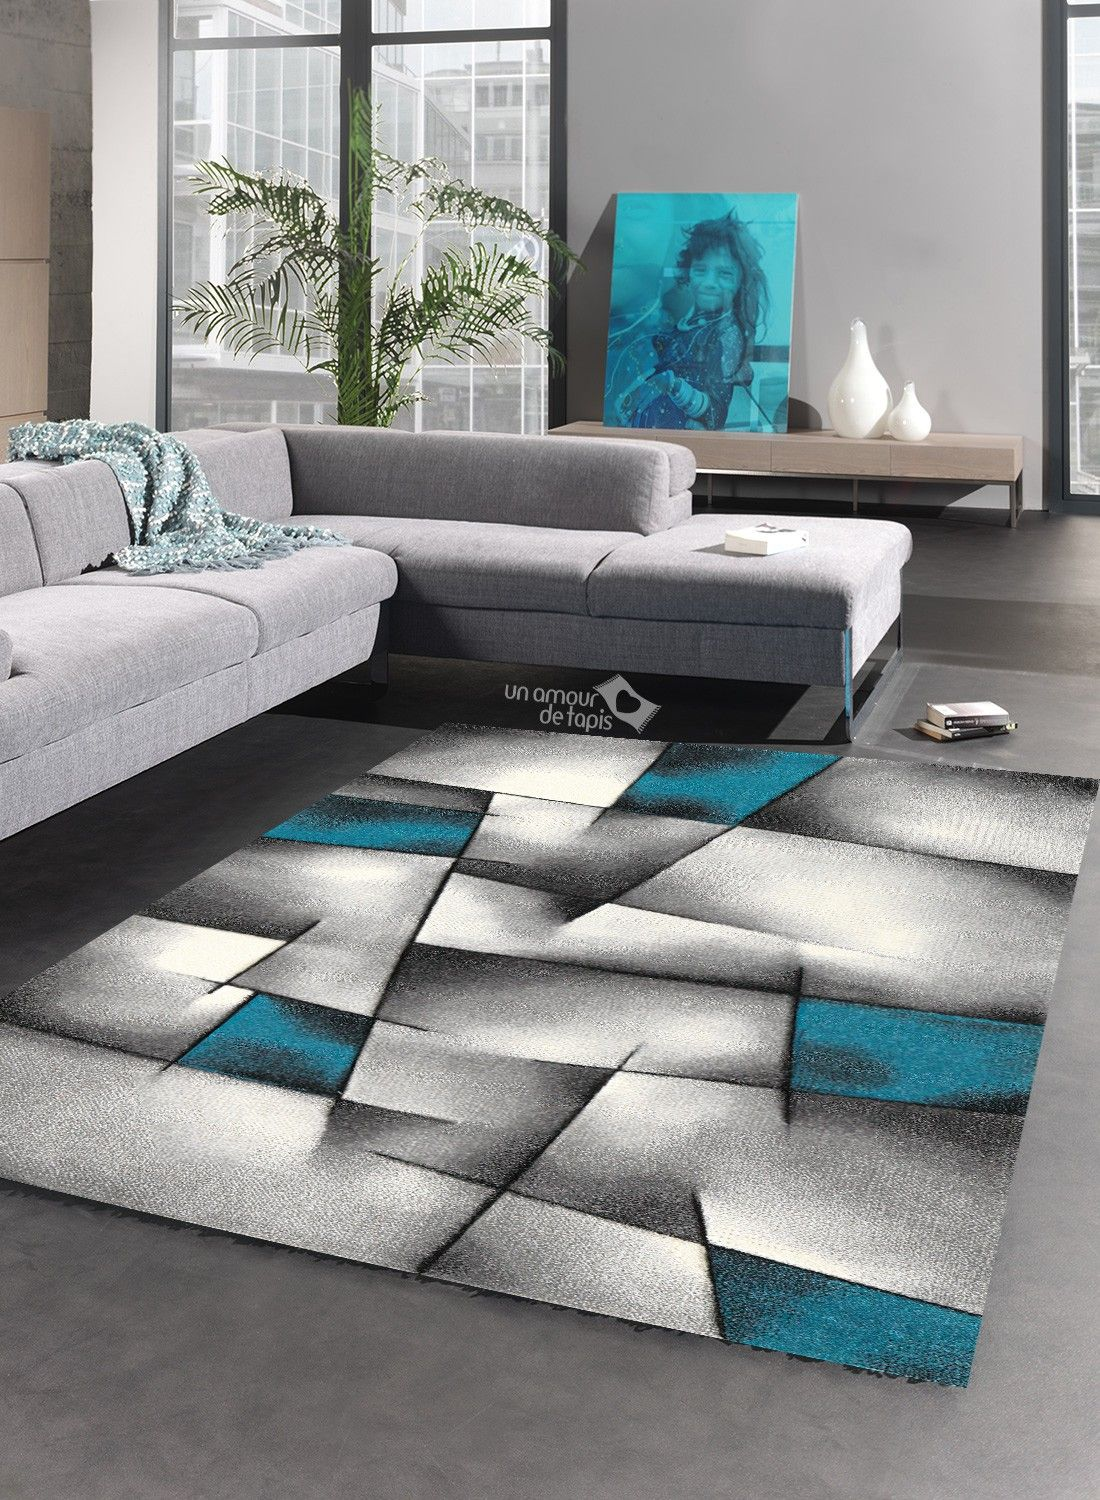 Tapis Orange Et Gris Best Tapis De Salon Bleu Turquoise Et Orange Images House Design